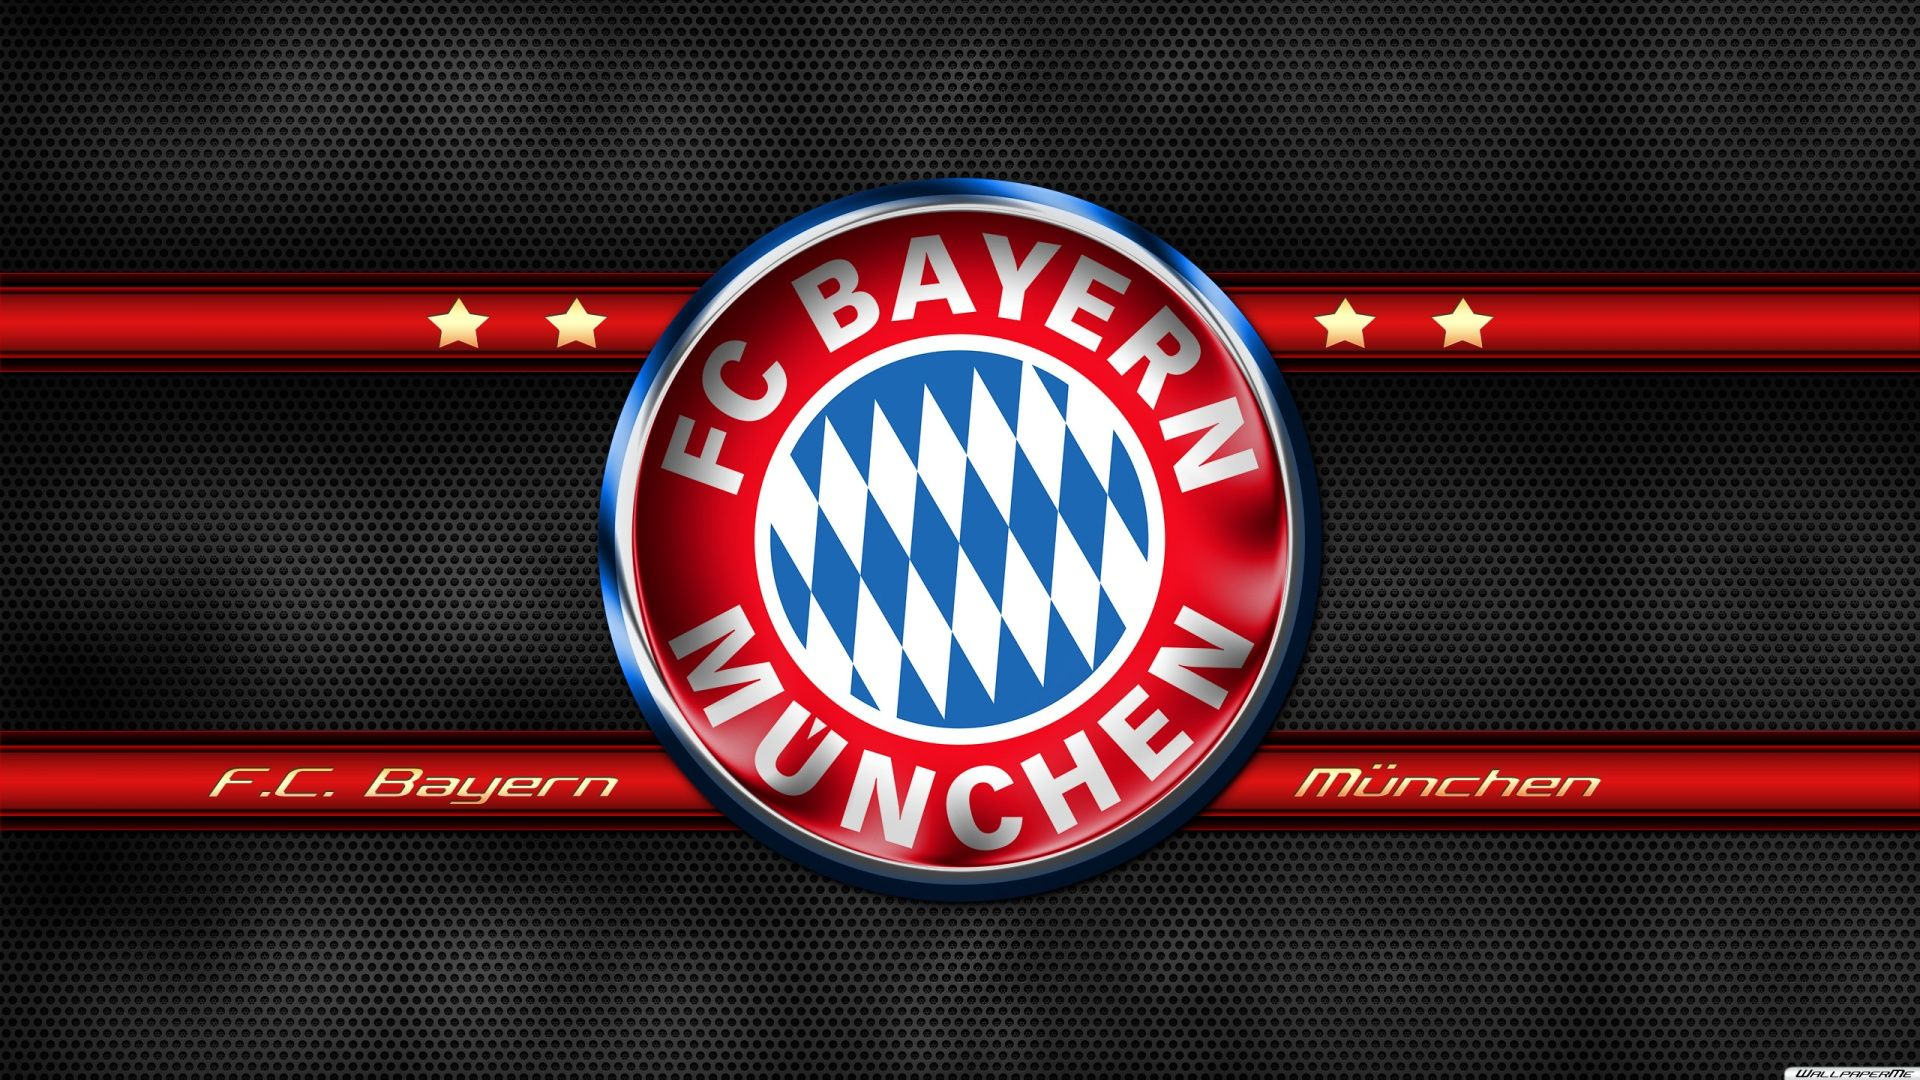 242424 4k Ultra Hd Fc Bayern Images Wallpapers For Desktop Adorable Wallpapers In 2019 Logo